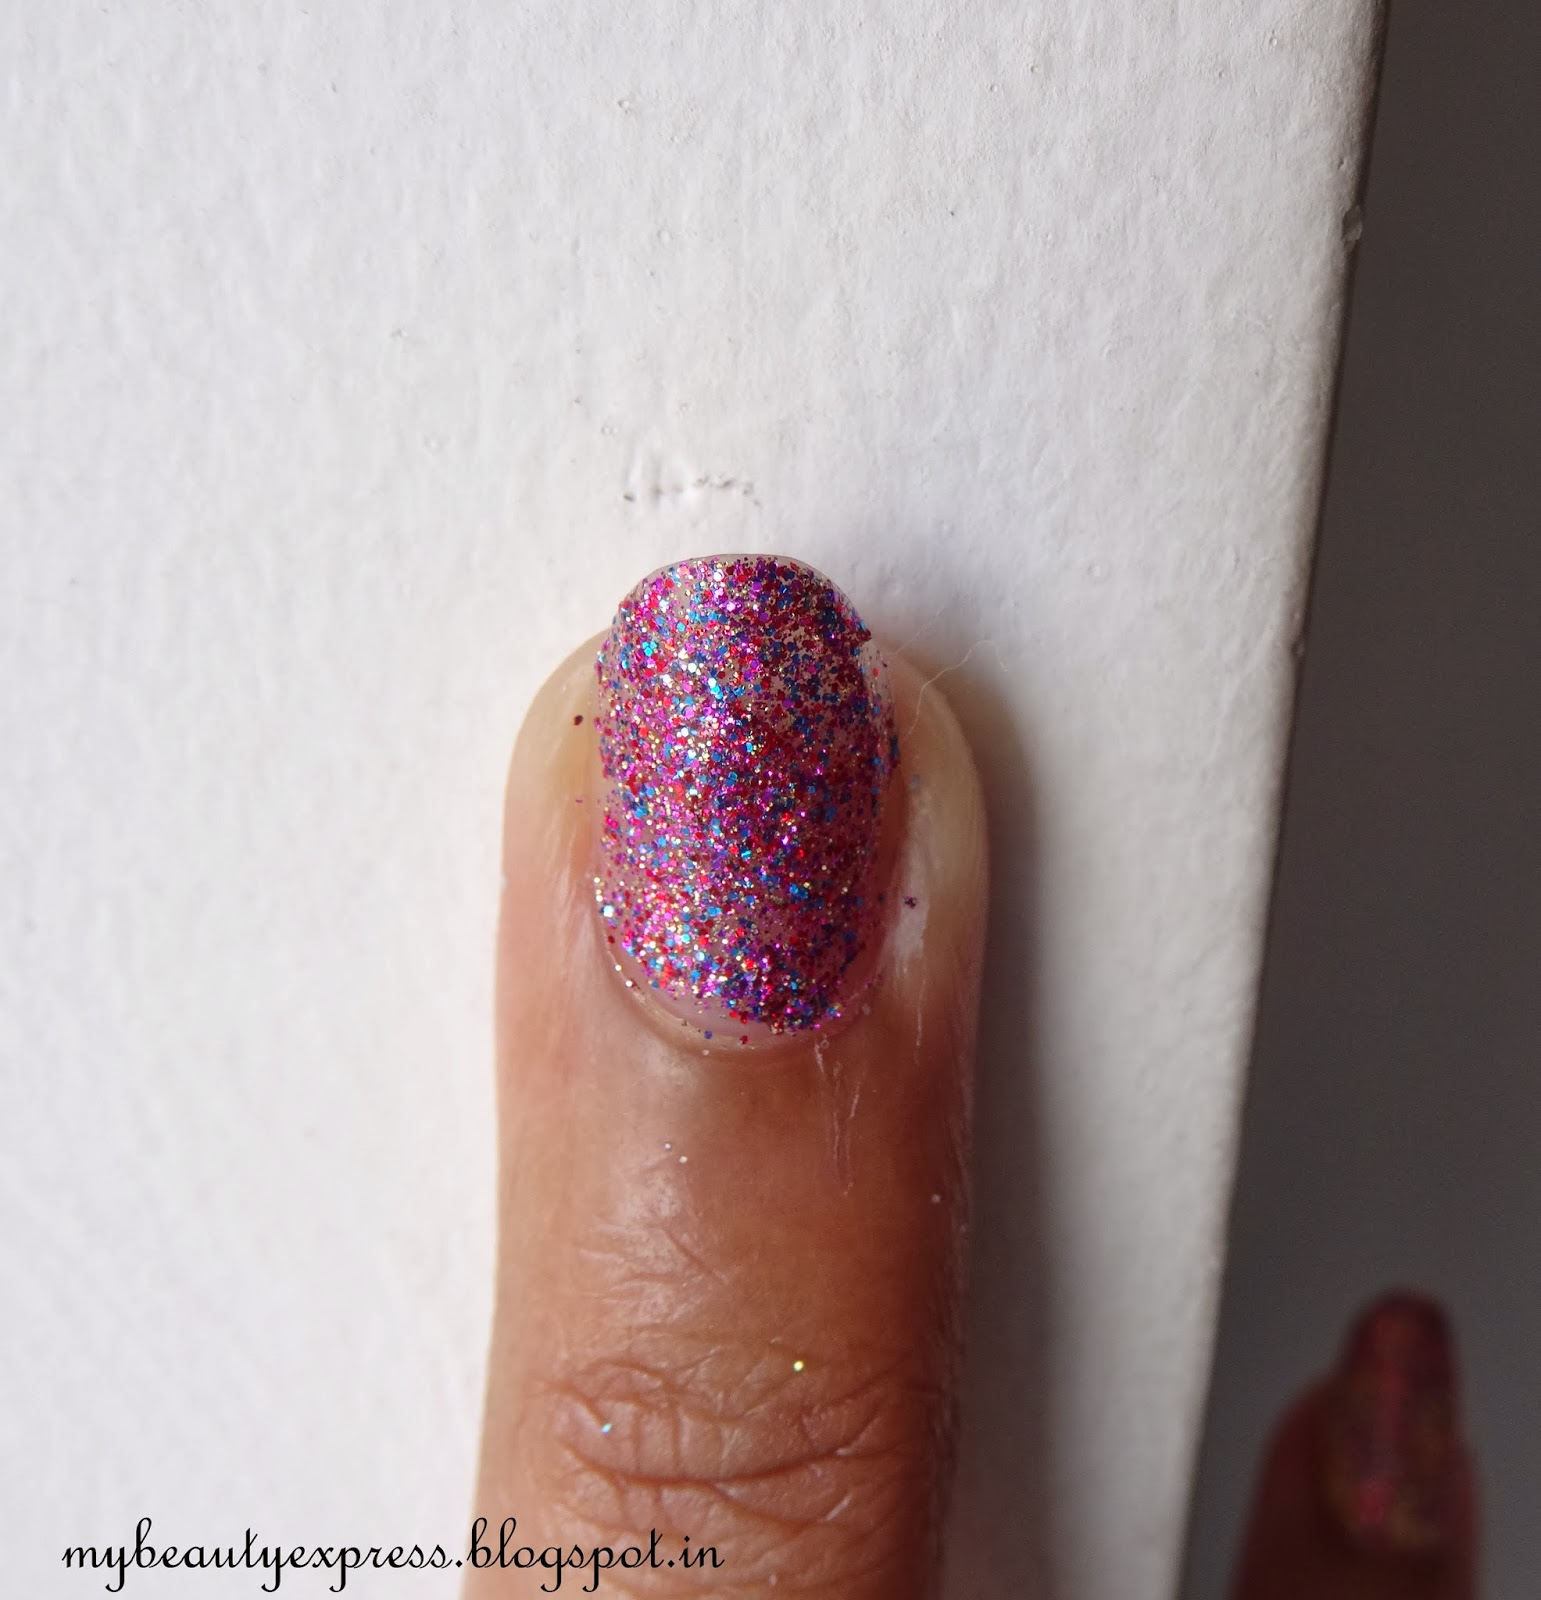 Sally Hansen Hard As Nails Xtreme Wear in Rockstar Pink Review